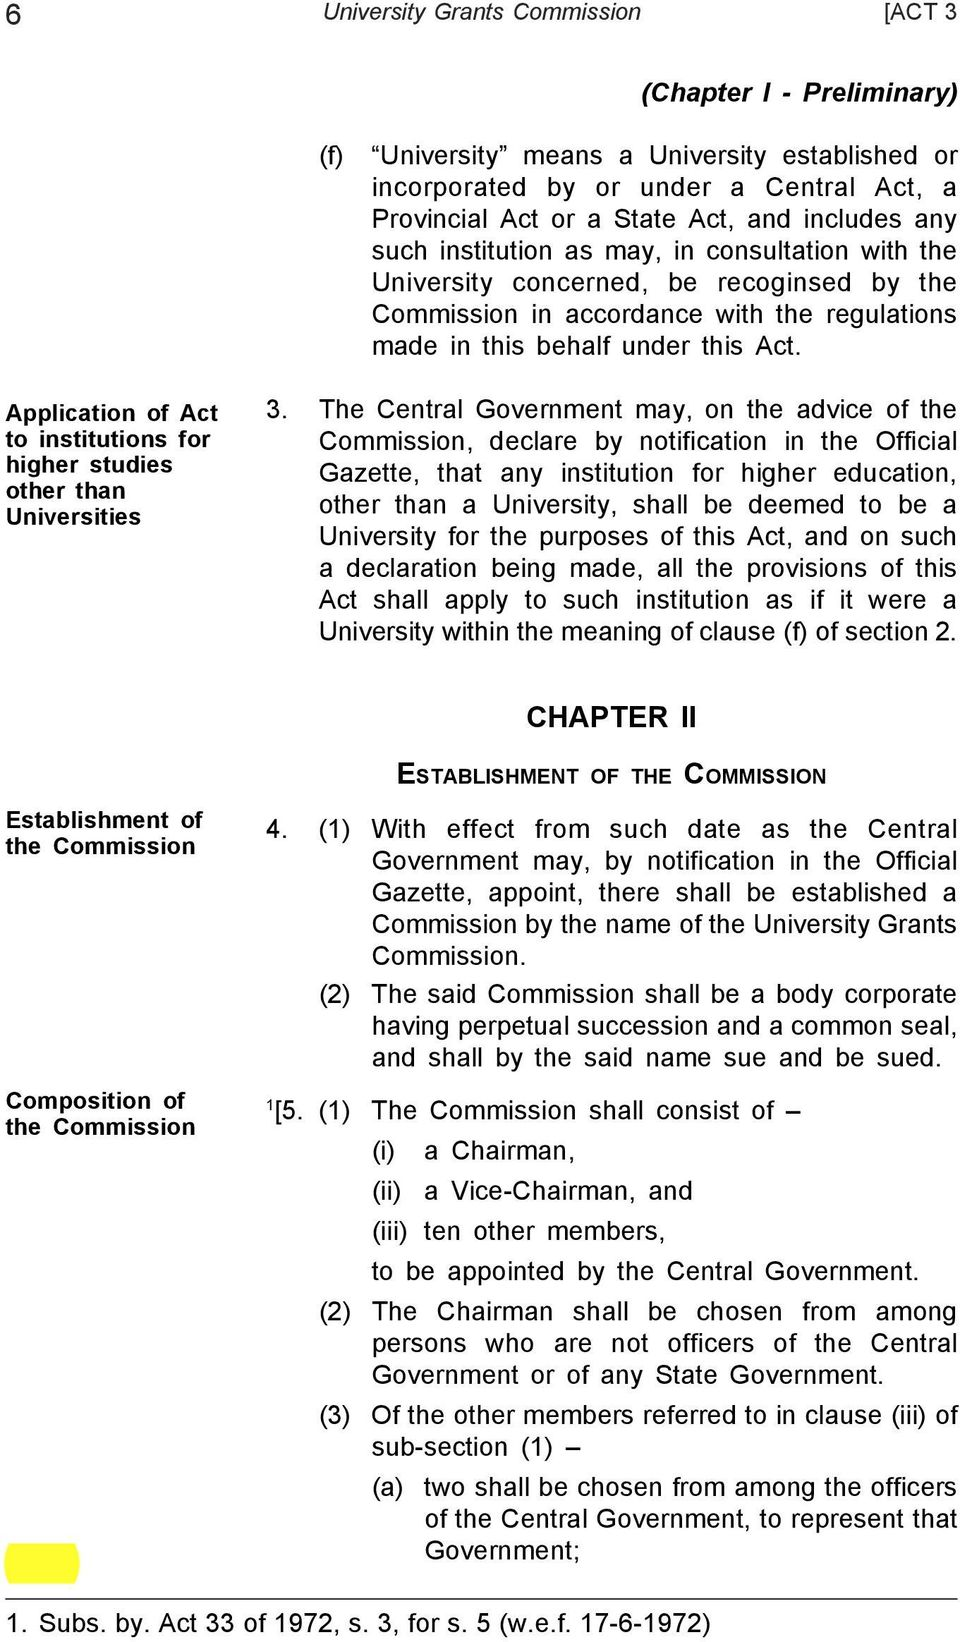 Application of Act to institutions for higher studies other than Universities 3.